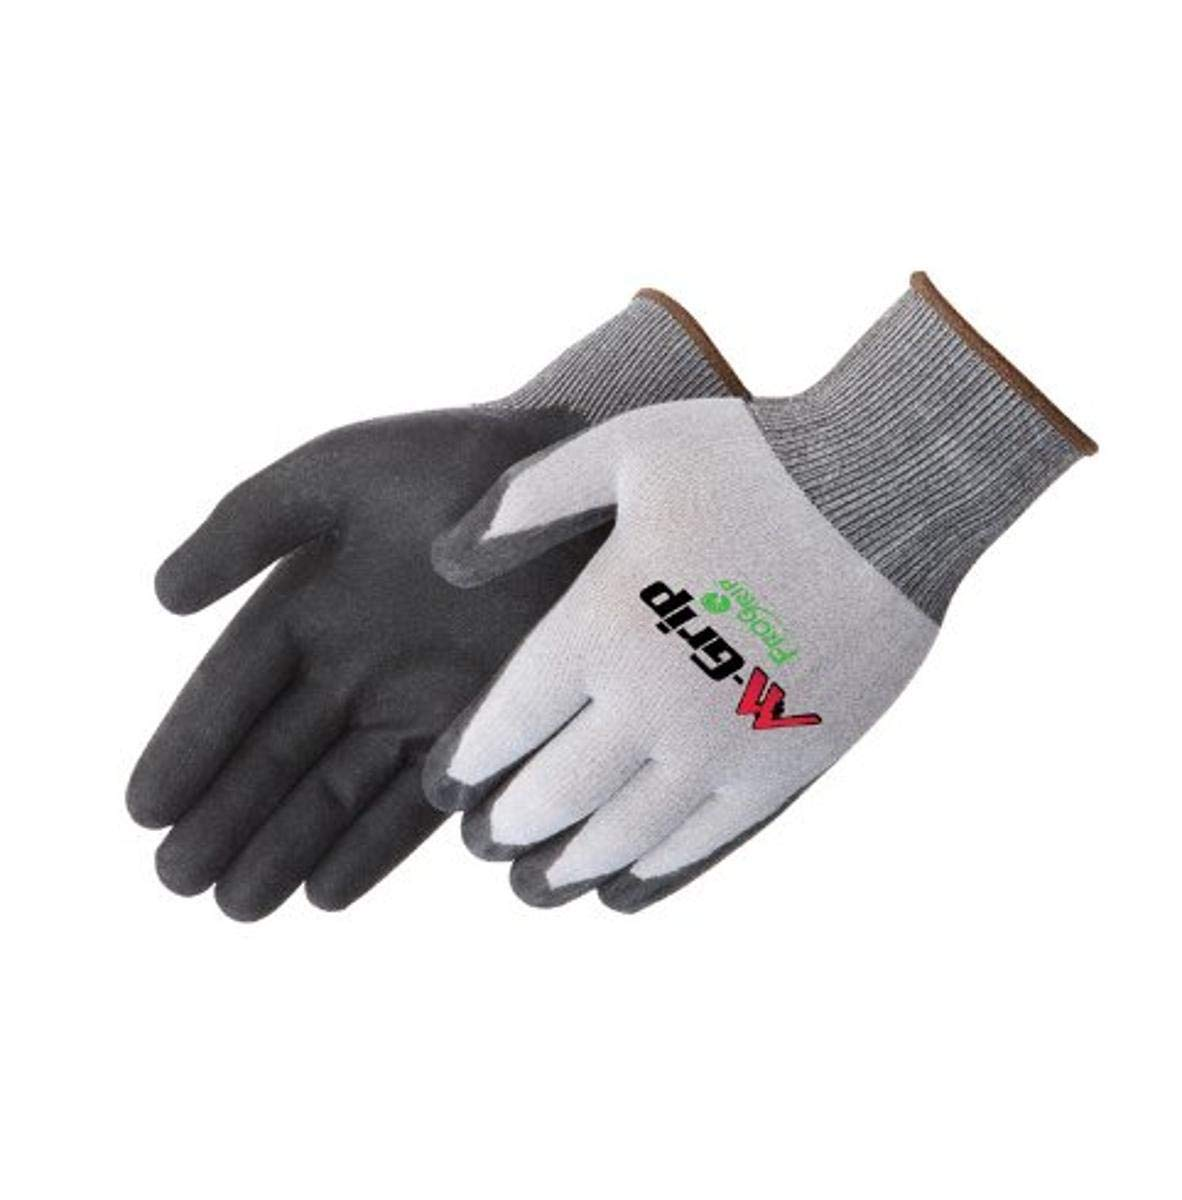 Liberty M-Grip High Density Polyurethane Palm Coated Seamless Knit Glove with 15-Gauge Nylon Shell, 2X-Large, Black (Pack of 12)